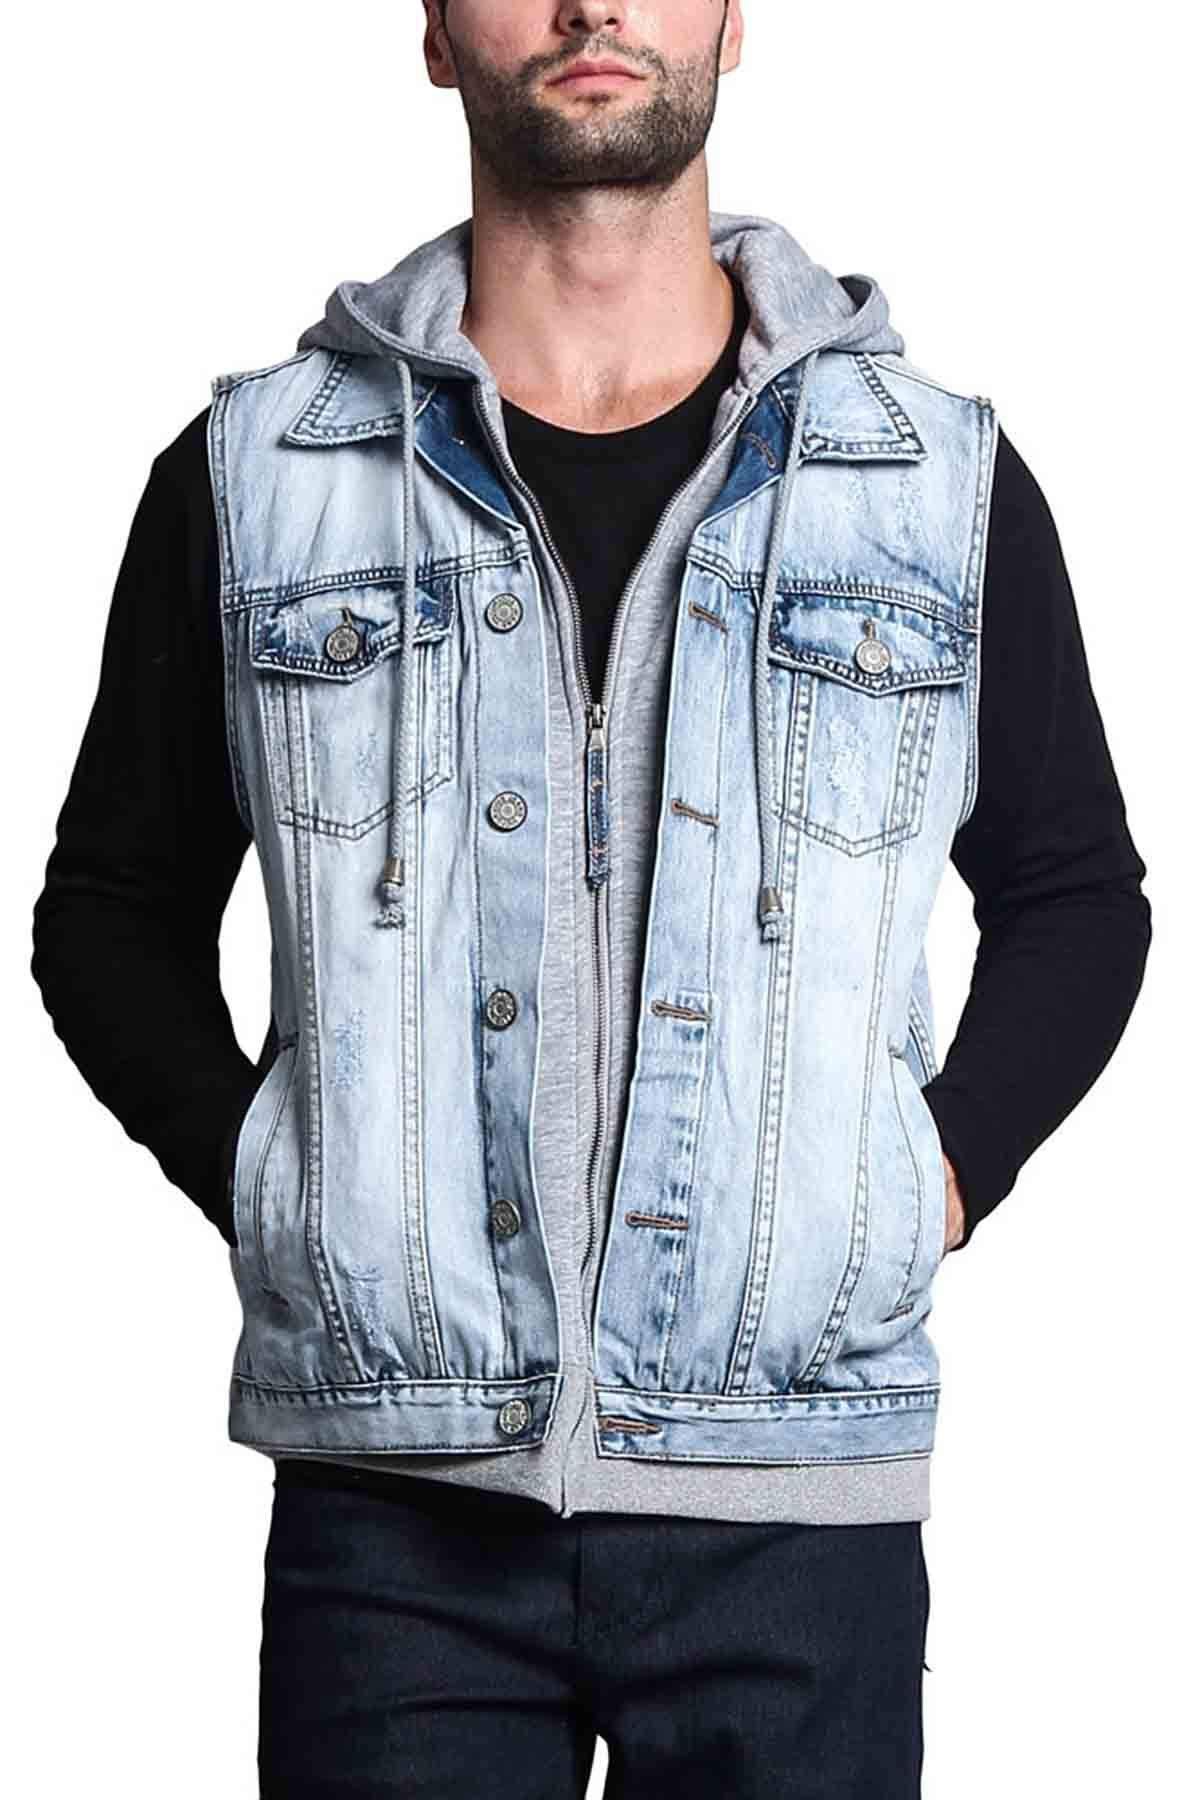 Victorious Layered Hooded Denim Jean Vest Jacket DK110 - Layered Ice - Medium - GG1G by Victorious